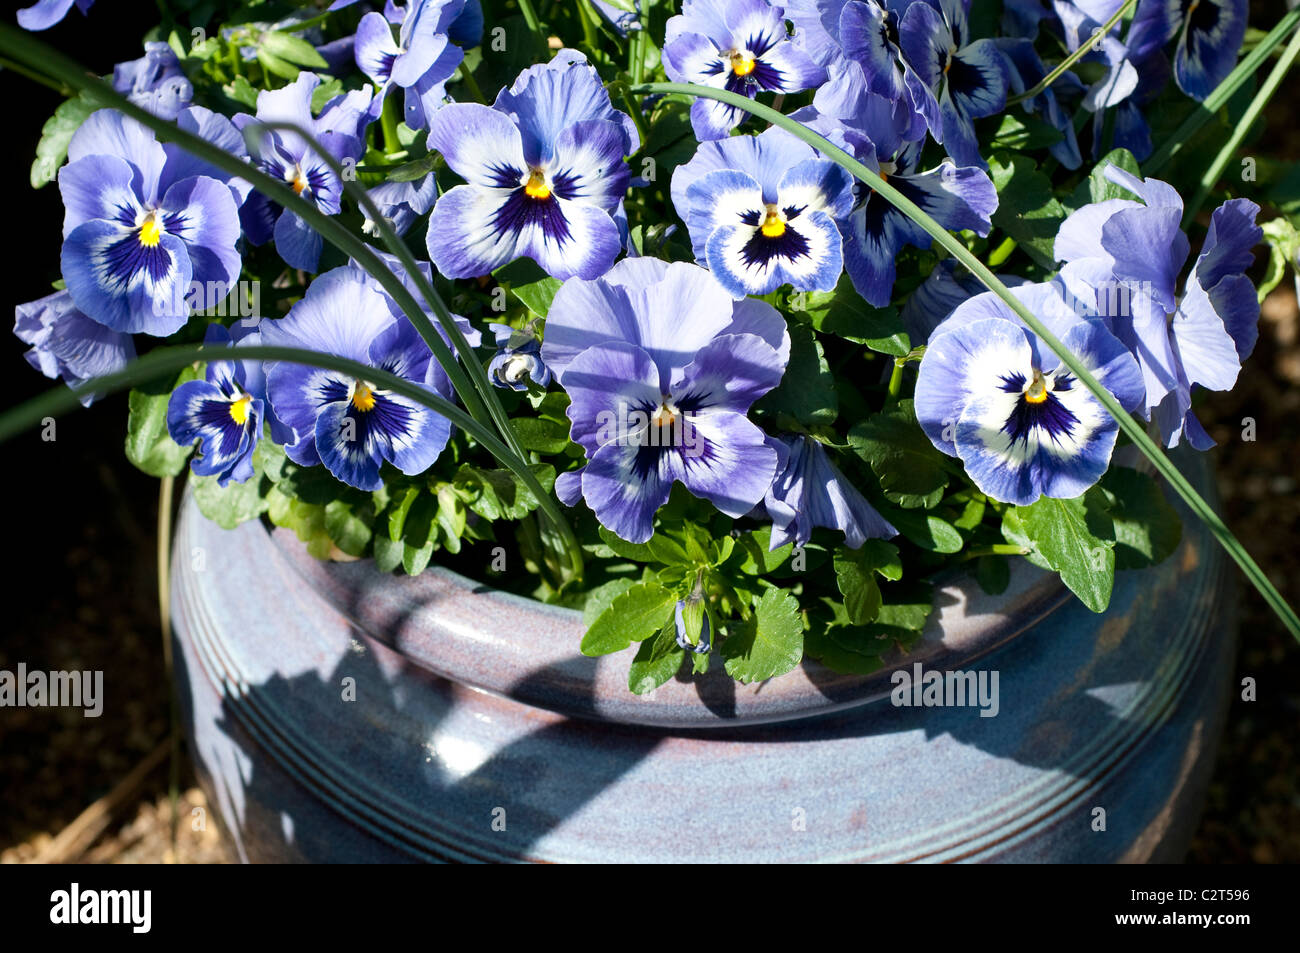 Purple pansies in a container - Stock Image